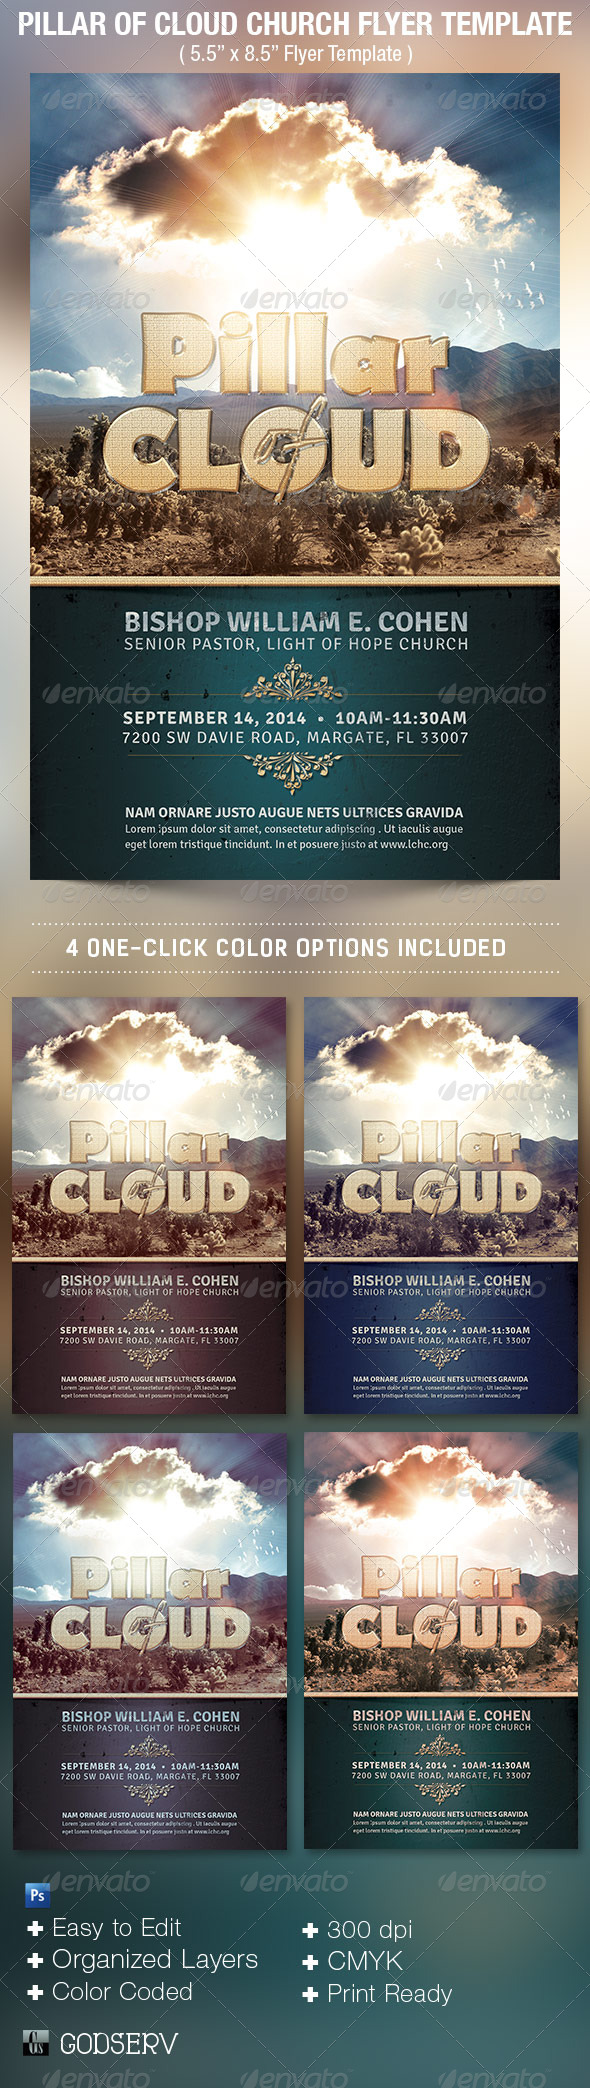 GraphicRiver Pillar of Cloud Chuch Flyer Template 5582190